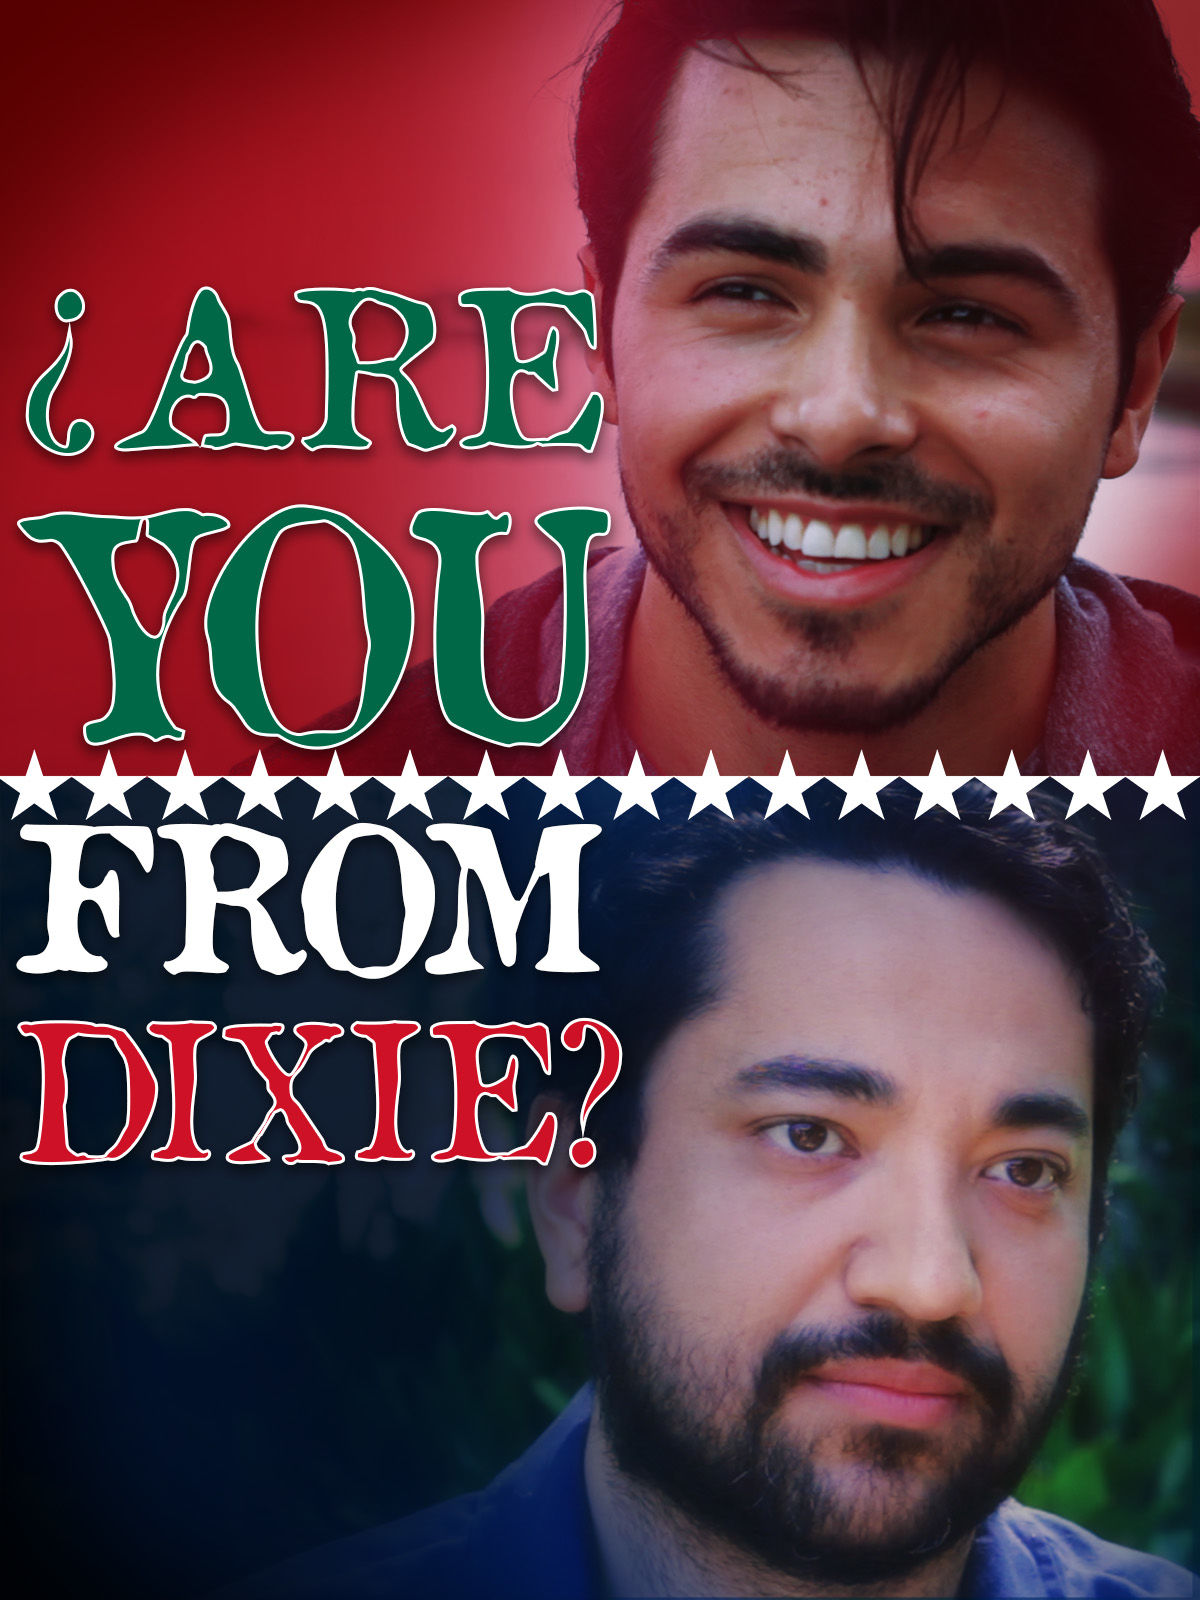 Are You from Dixie?